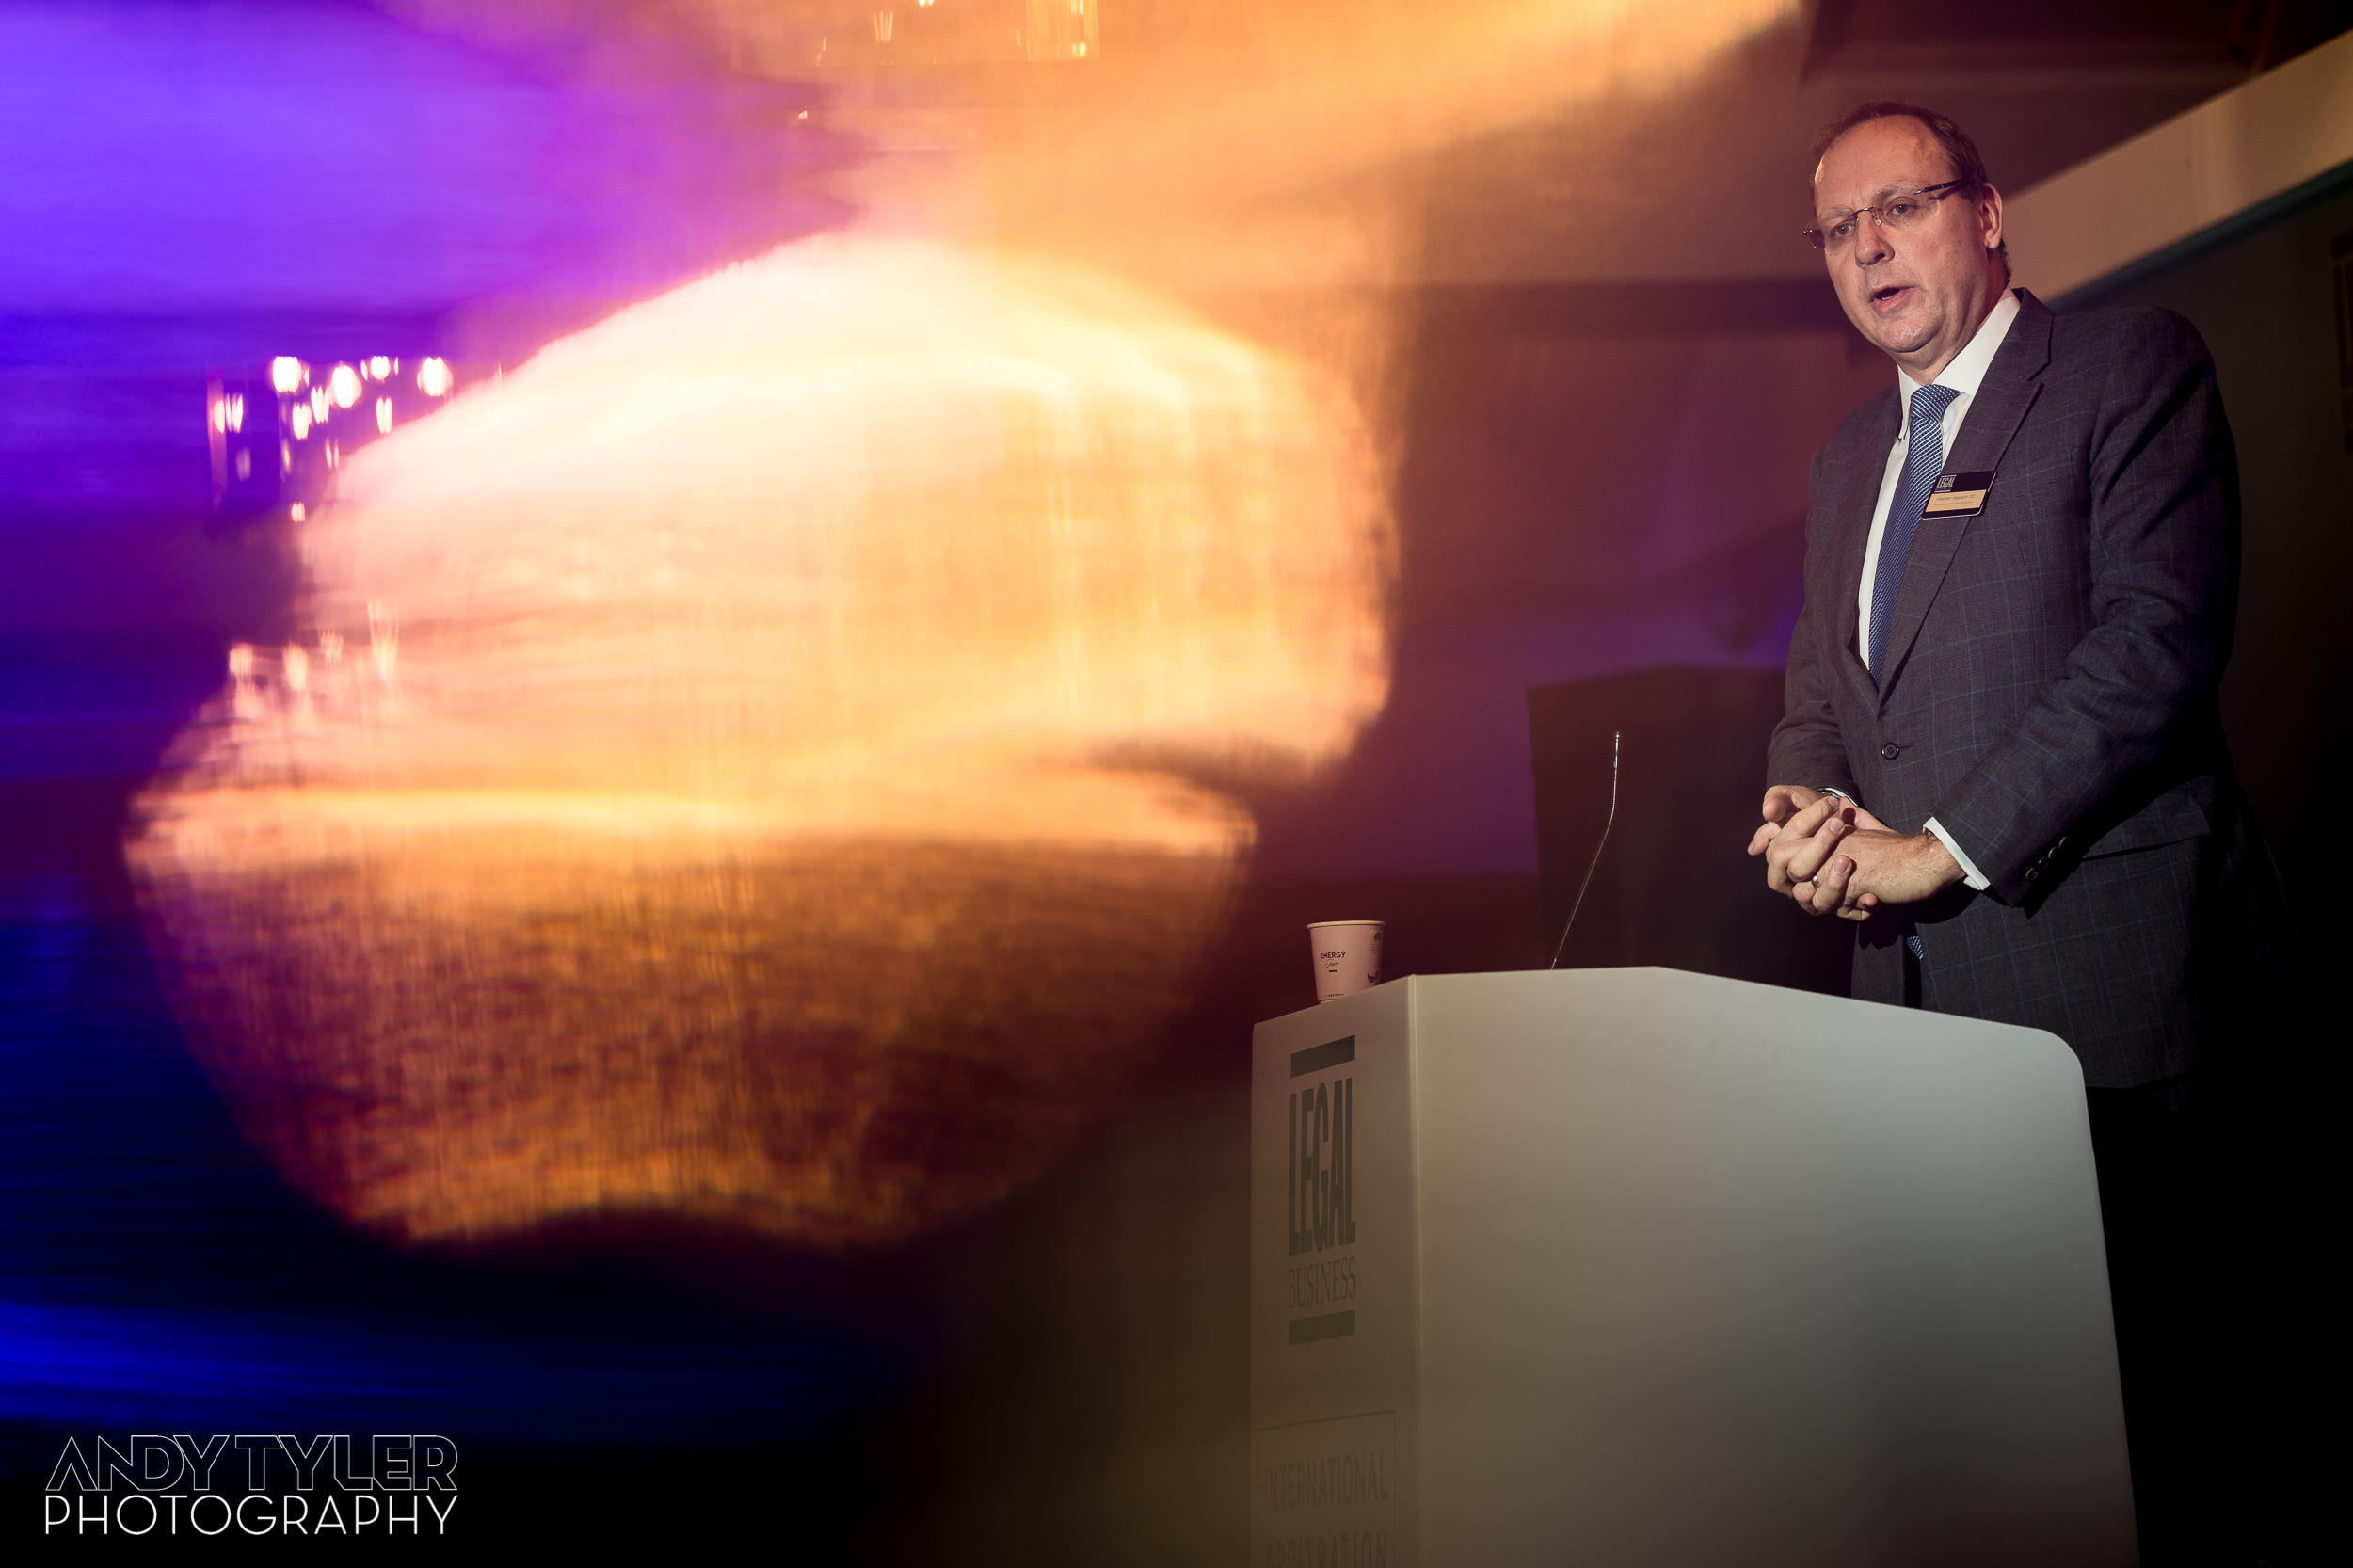 Andy_Tyler_Photography_Business_Conference_007_Andy_Tyler_Photography_081_5DA_0445.jpg